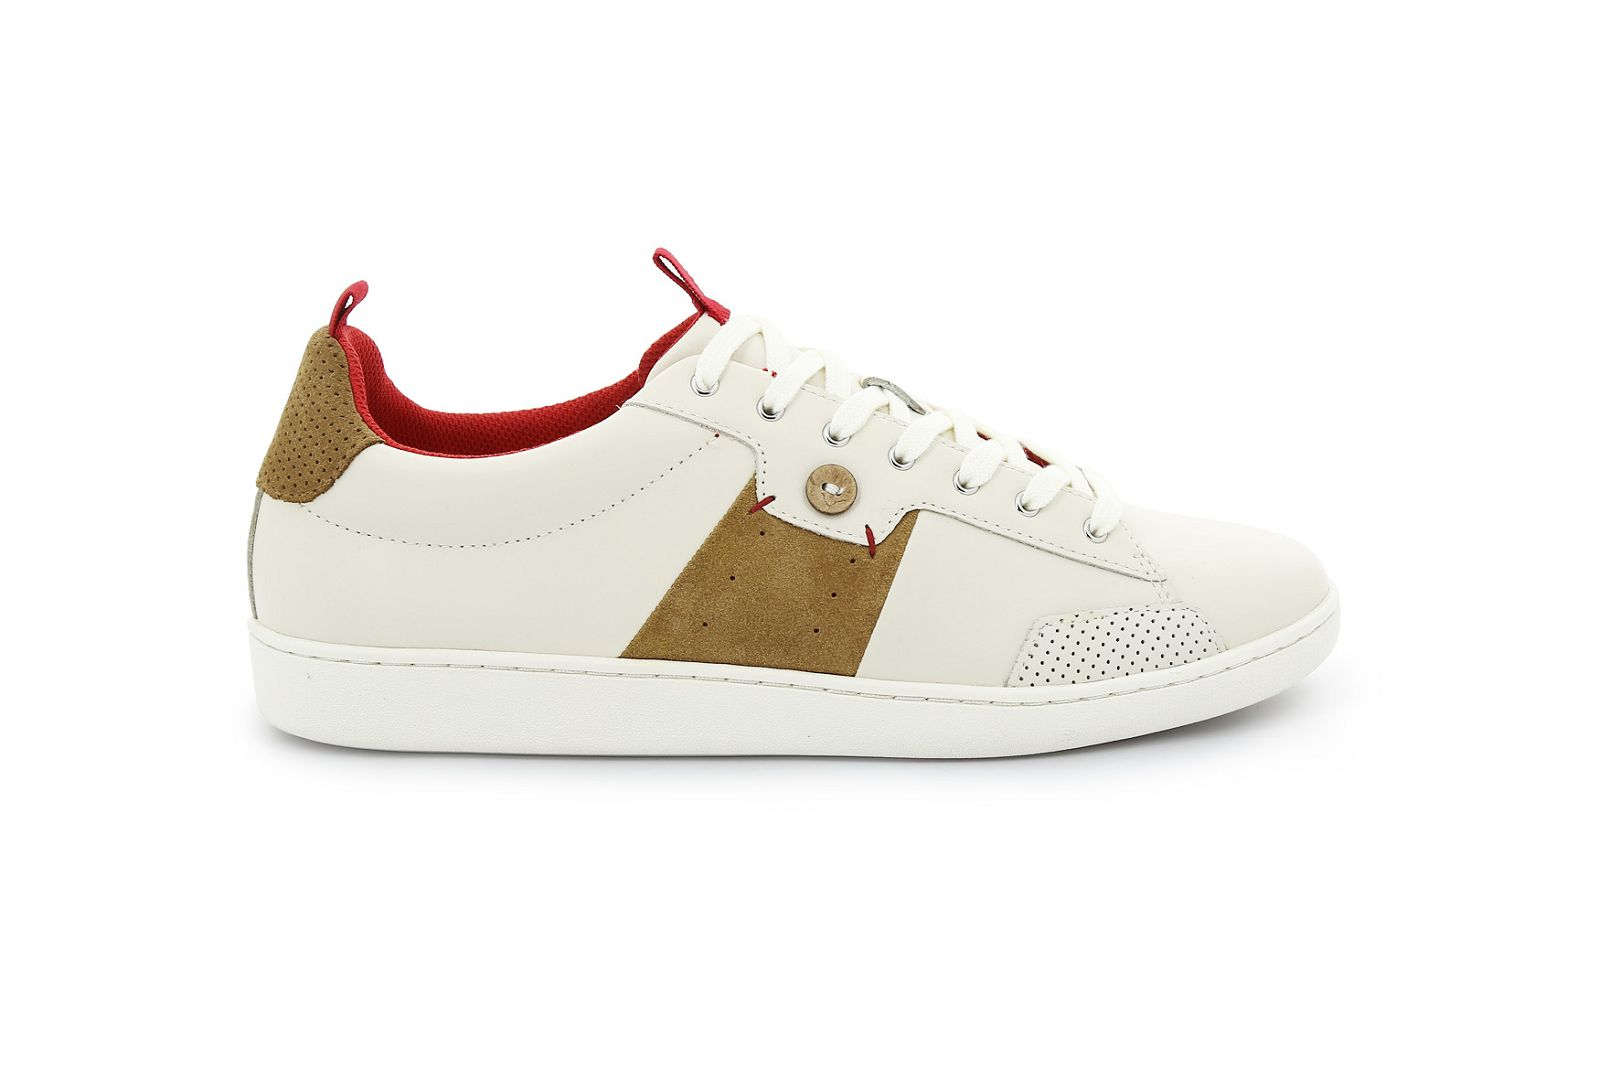 Hosa suede leather